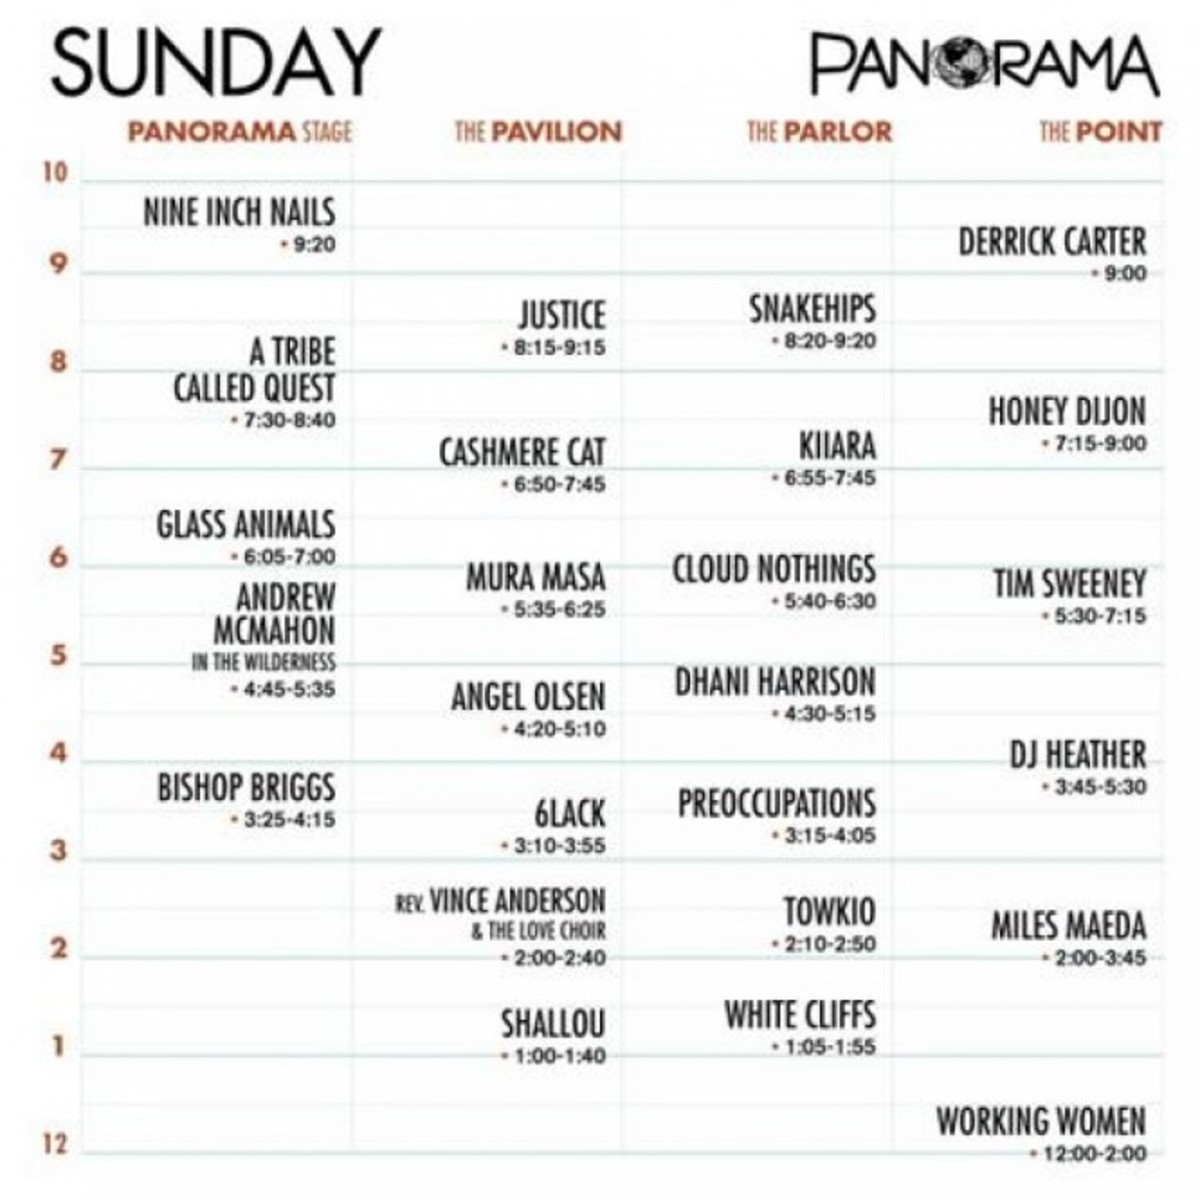 Panorama Schedule - Day 3